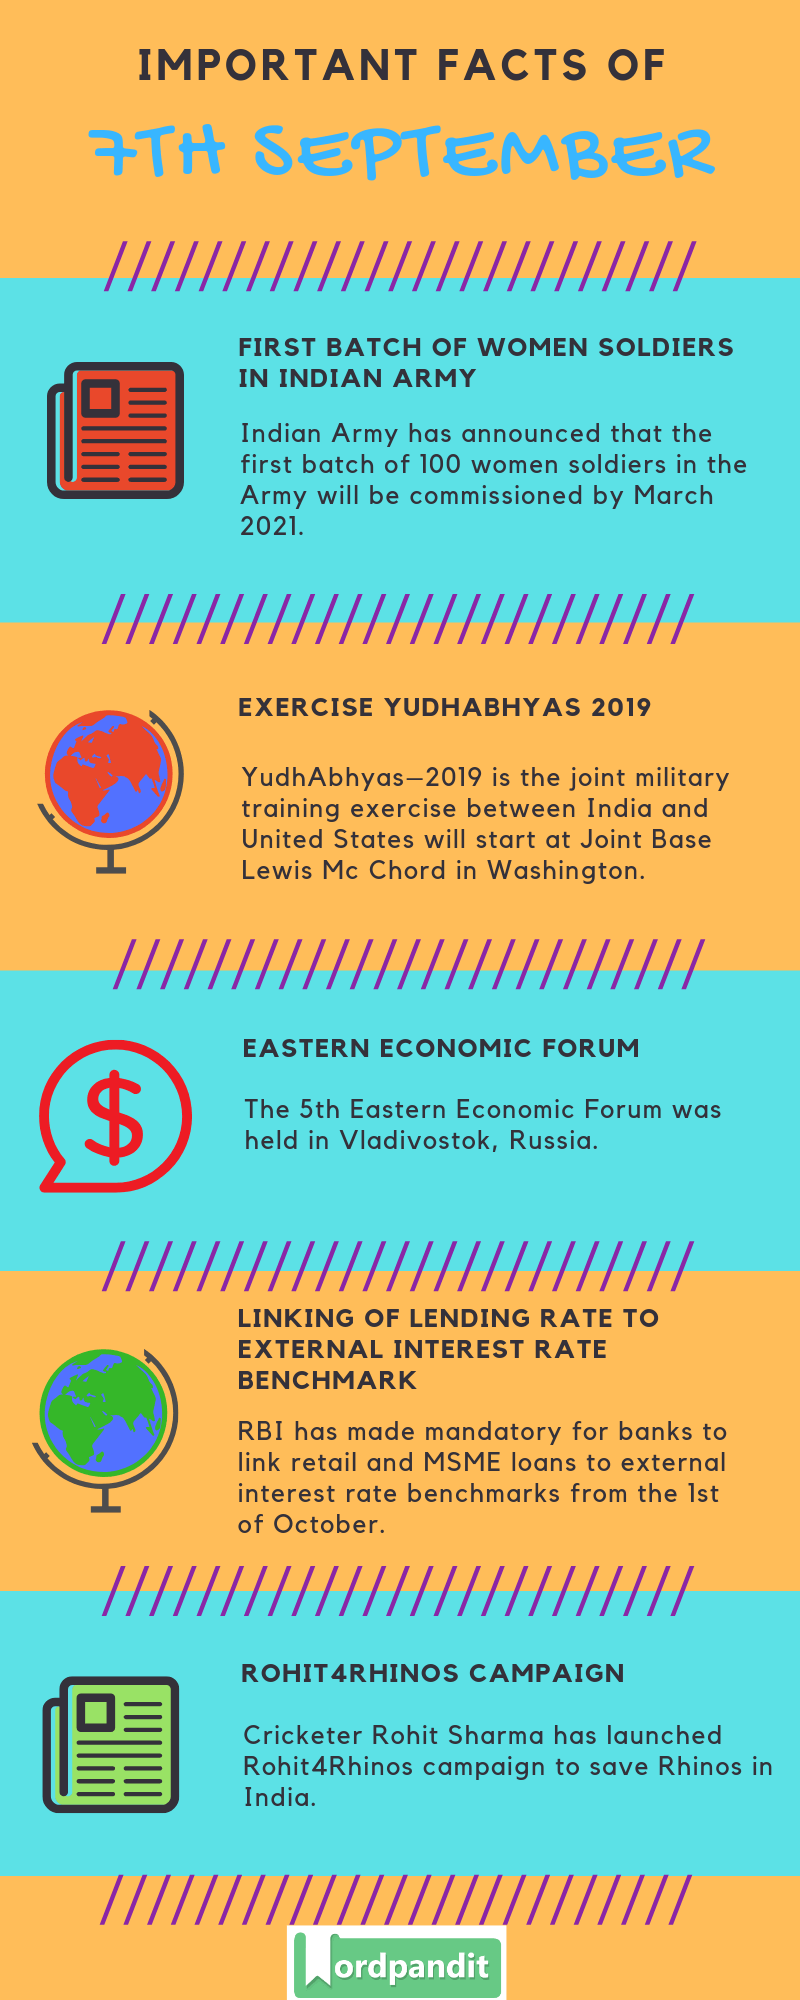 Daily Current Affairs 7 September 2019 Current Affairs Quiz 7 September 2019 Current Affairs Infographic